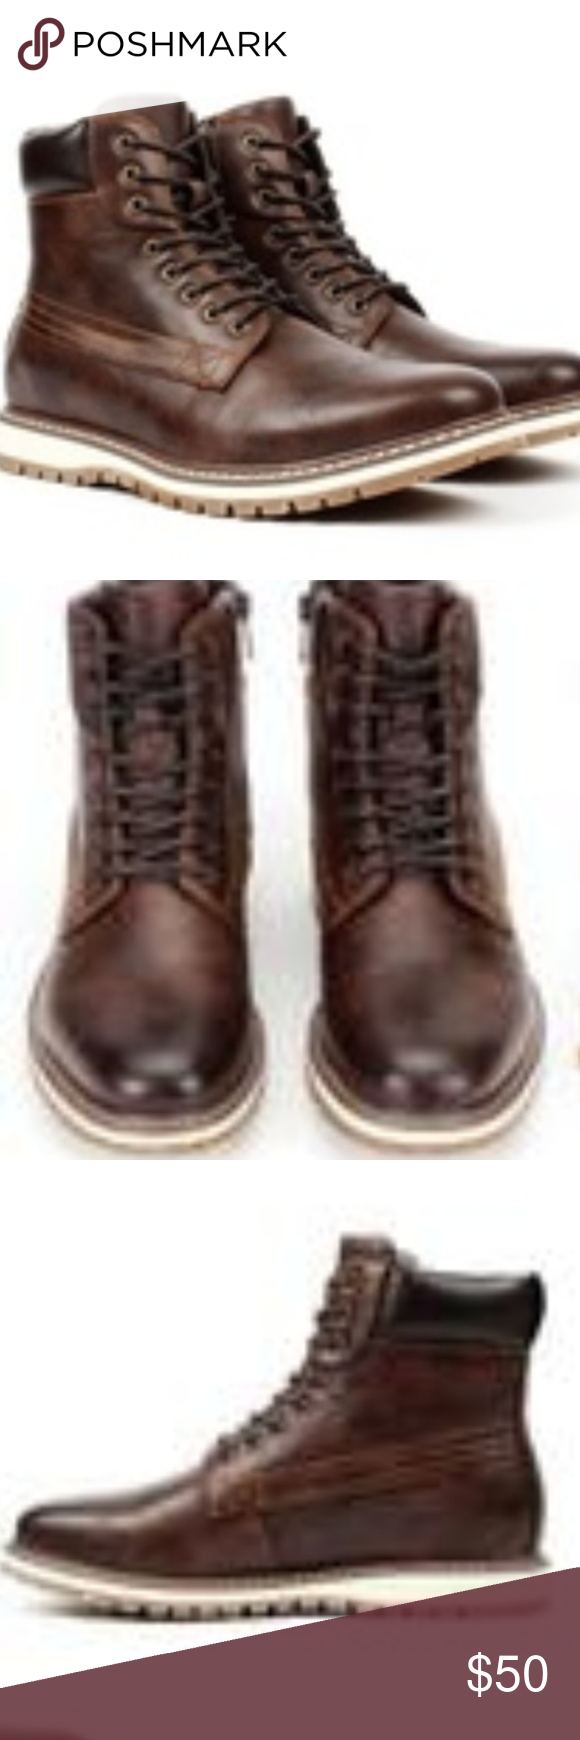 Dark Brown Round-toe lace-up boots for